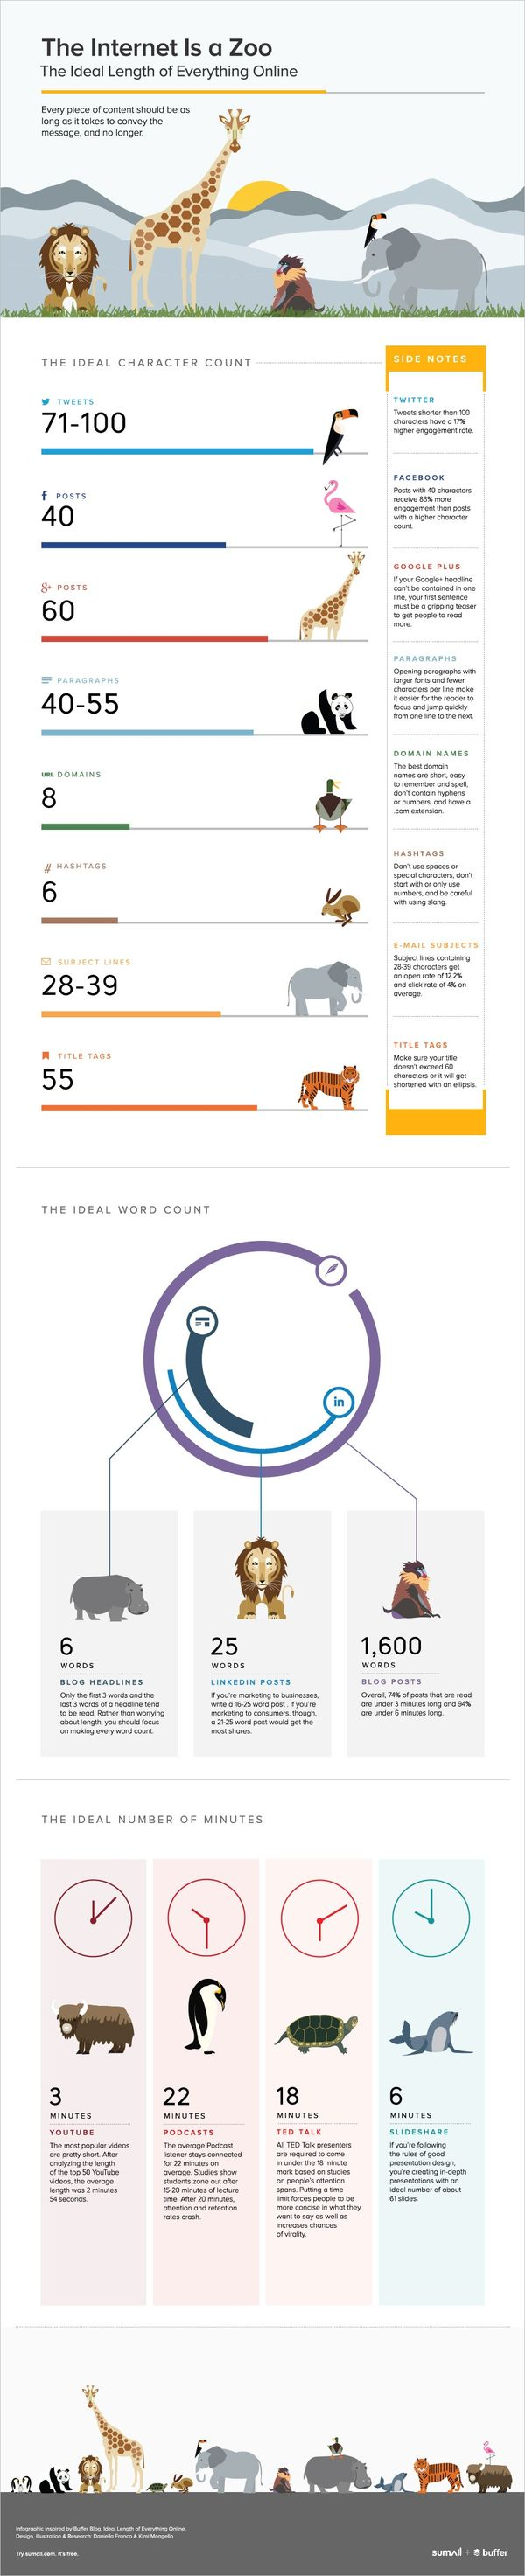 Infographic: The Ideal Length of Everything Online…